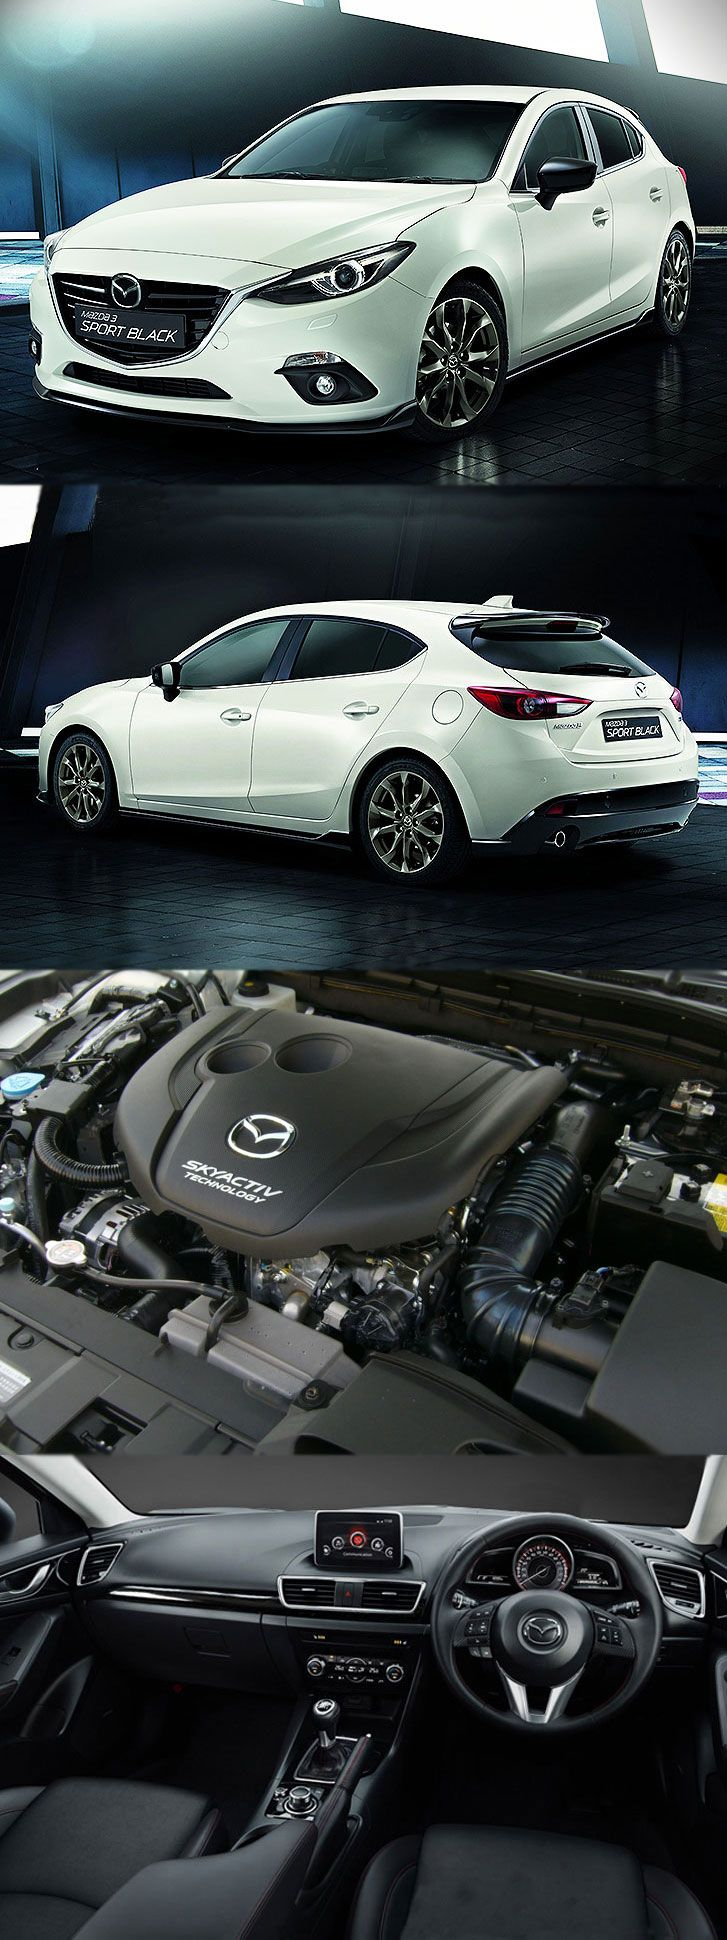 2016 Mazda 3 2.0 Skyactiv-G 120 sport Black has Arrived Get more details at: http://www.garage777.co.uk/blog/2016-mazda-3-2-0-skyactiv-g-120-sport-black-arrived/